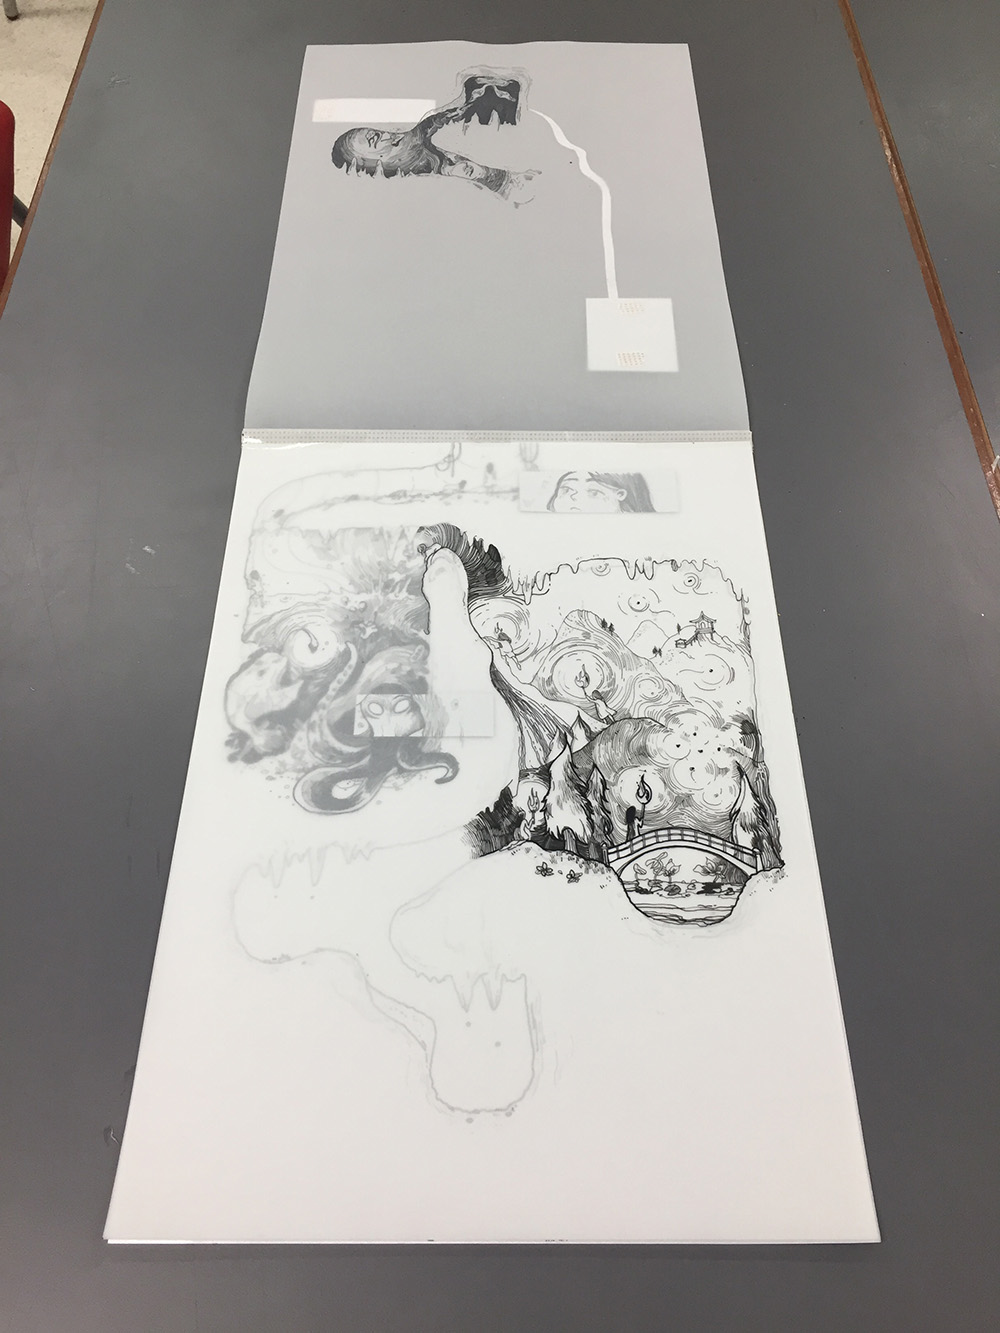 Sirusanant Yananissorn (Kade) [drawings on transparency that are slowly revealed as you turn pages.]